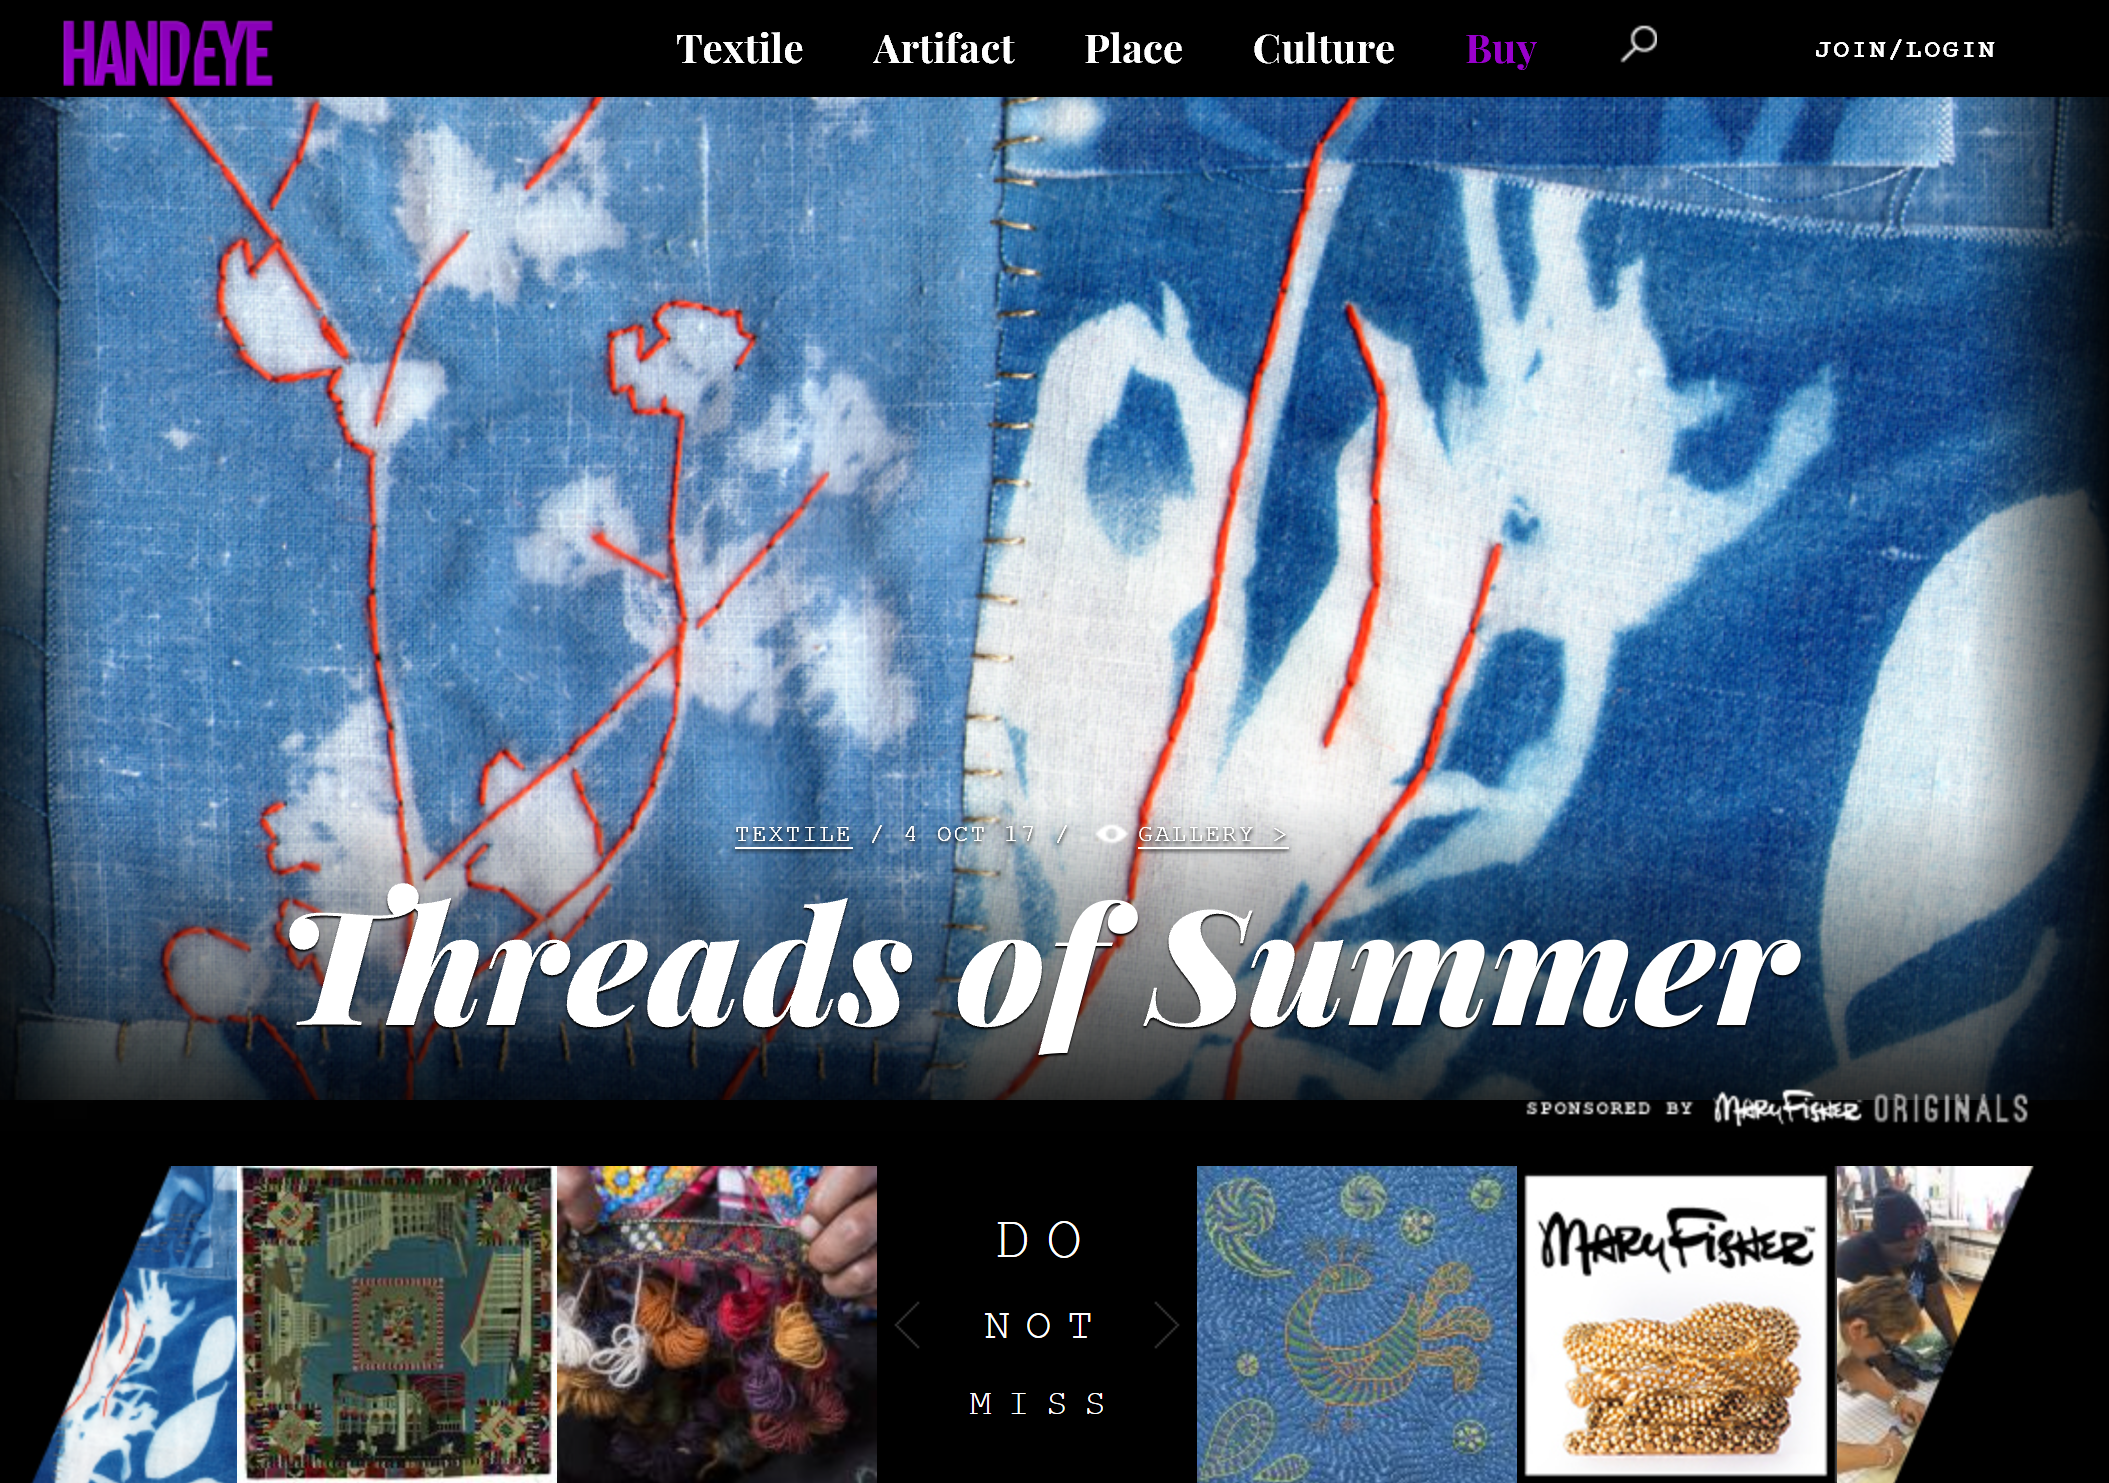 handeye magazine - threads of summer - front page - Oct 2017.png